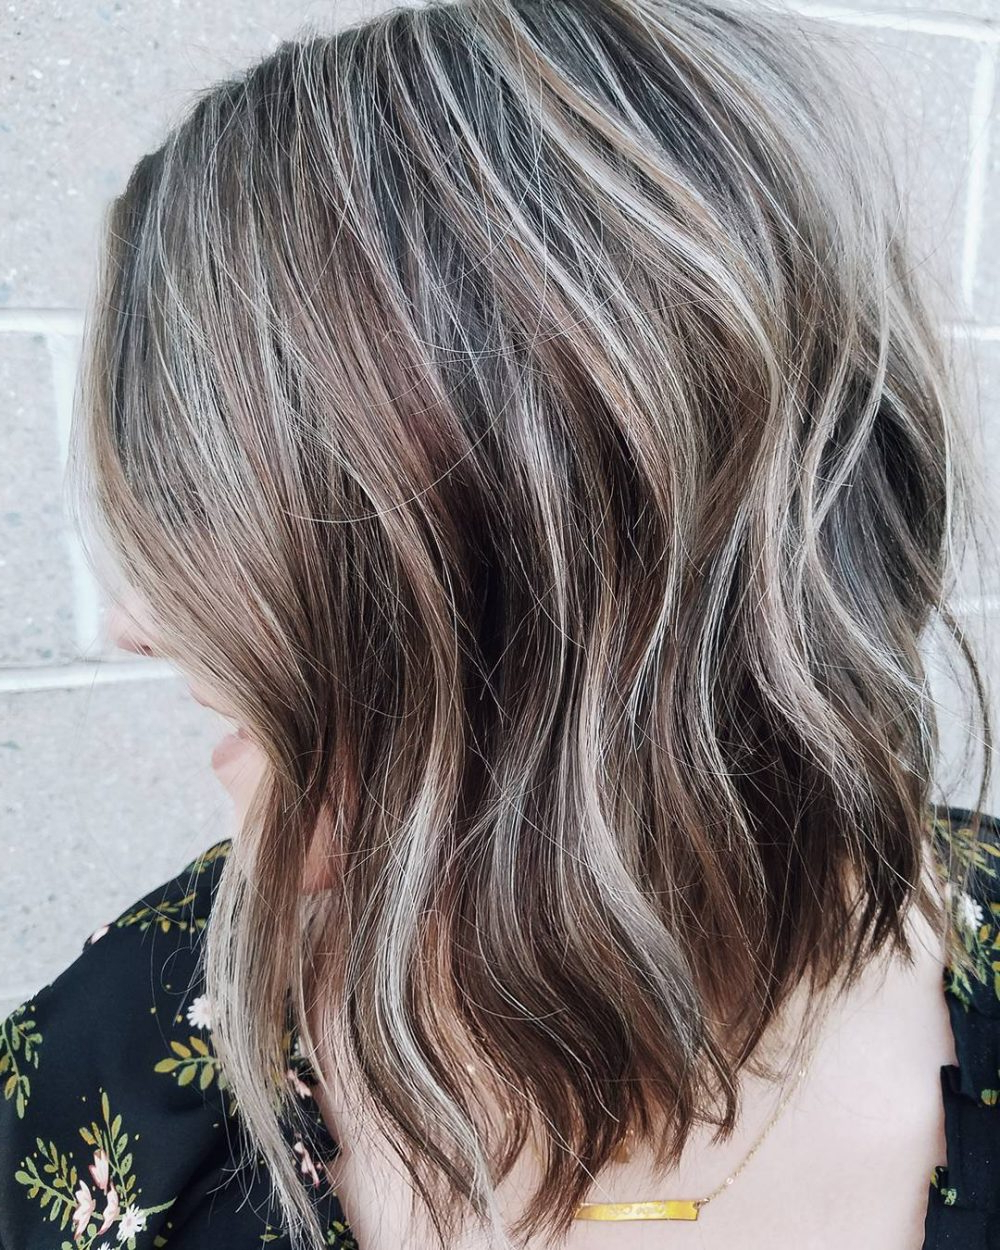 43 Perfect Short Hairstyles For Fine Hair In 2018 In Southern Belle Bob Haircuts With Gradual Layers (View 8 of 20)